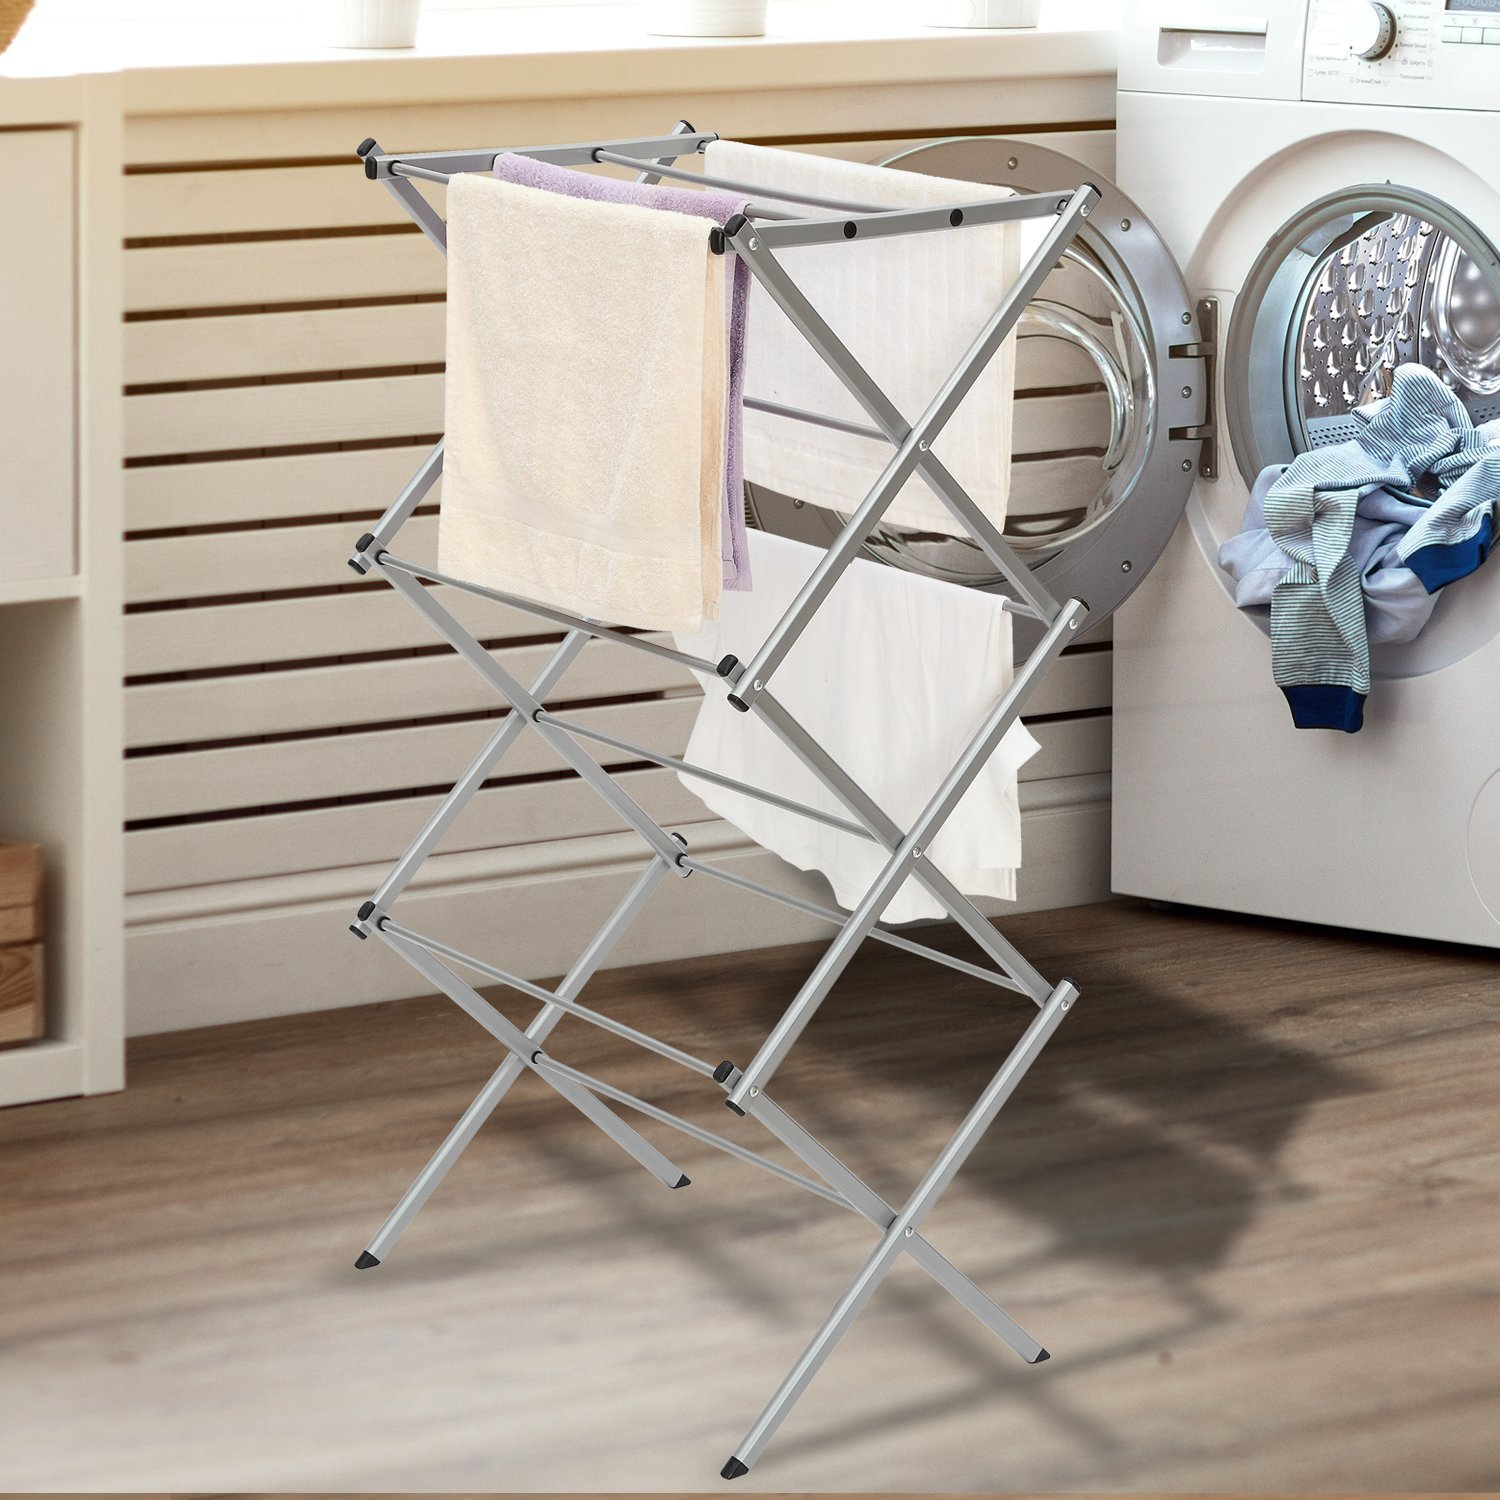 Ktaxon Folding Clothes Metal Drying Rack Towel Bathroom Rack Stand Shelf  Laudry Storage Organizer